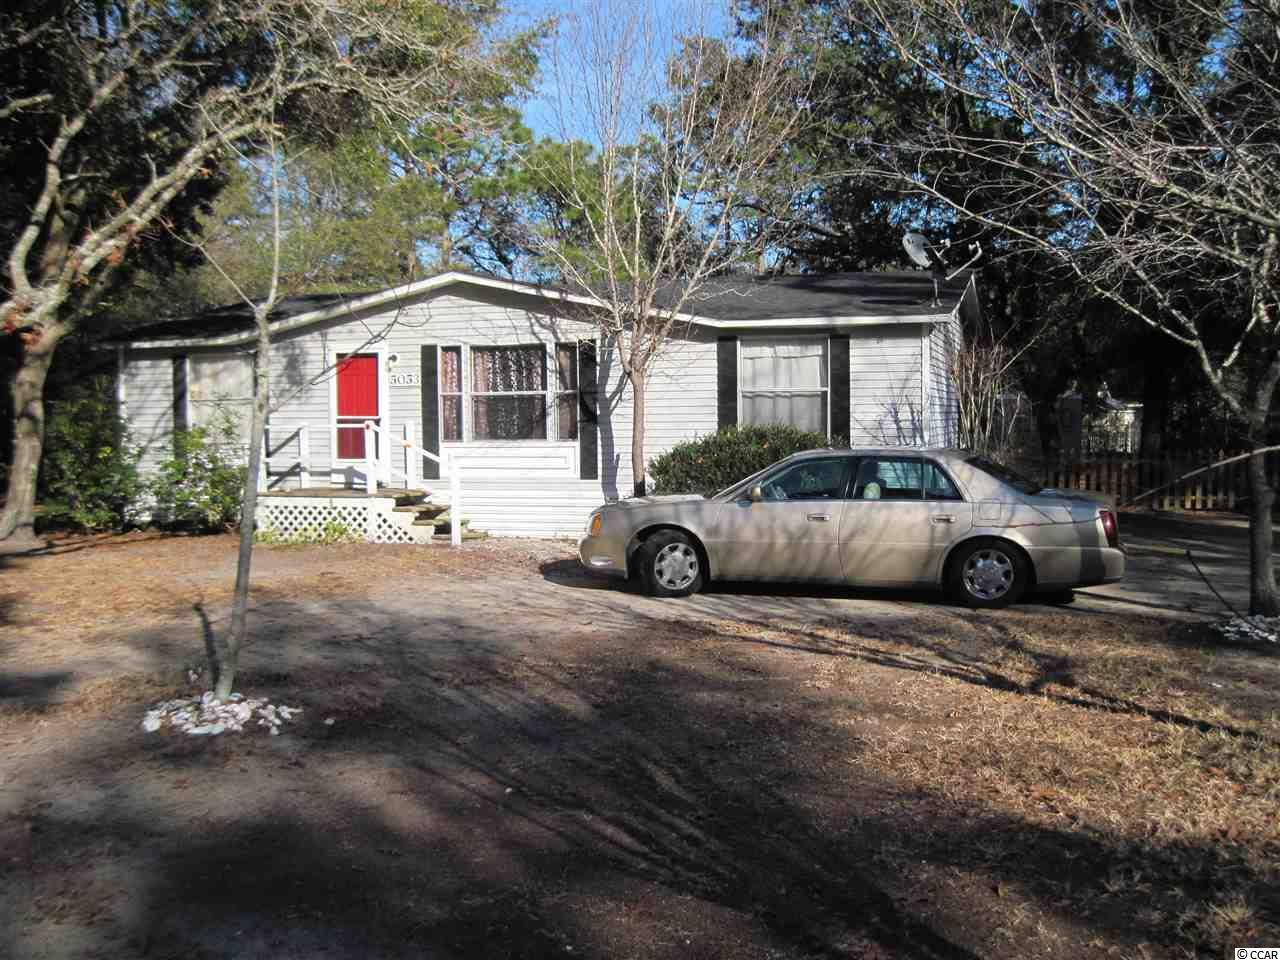 Single Family Home for Sale at 5053 Cowart Court 5053 Cowart Court Murrells Inlet, South Carolina 29576 United States